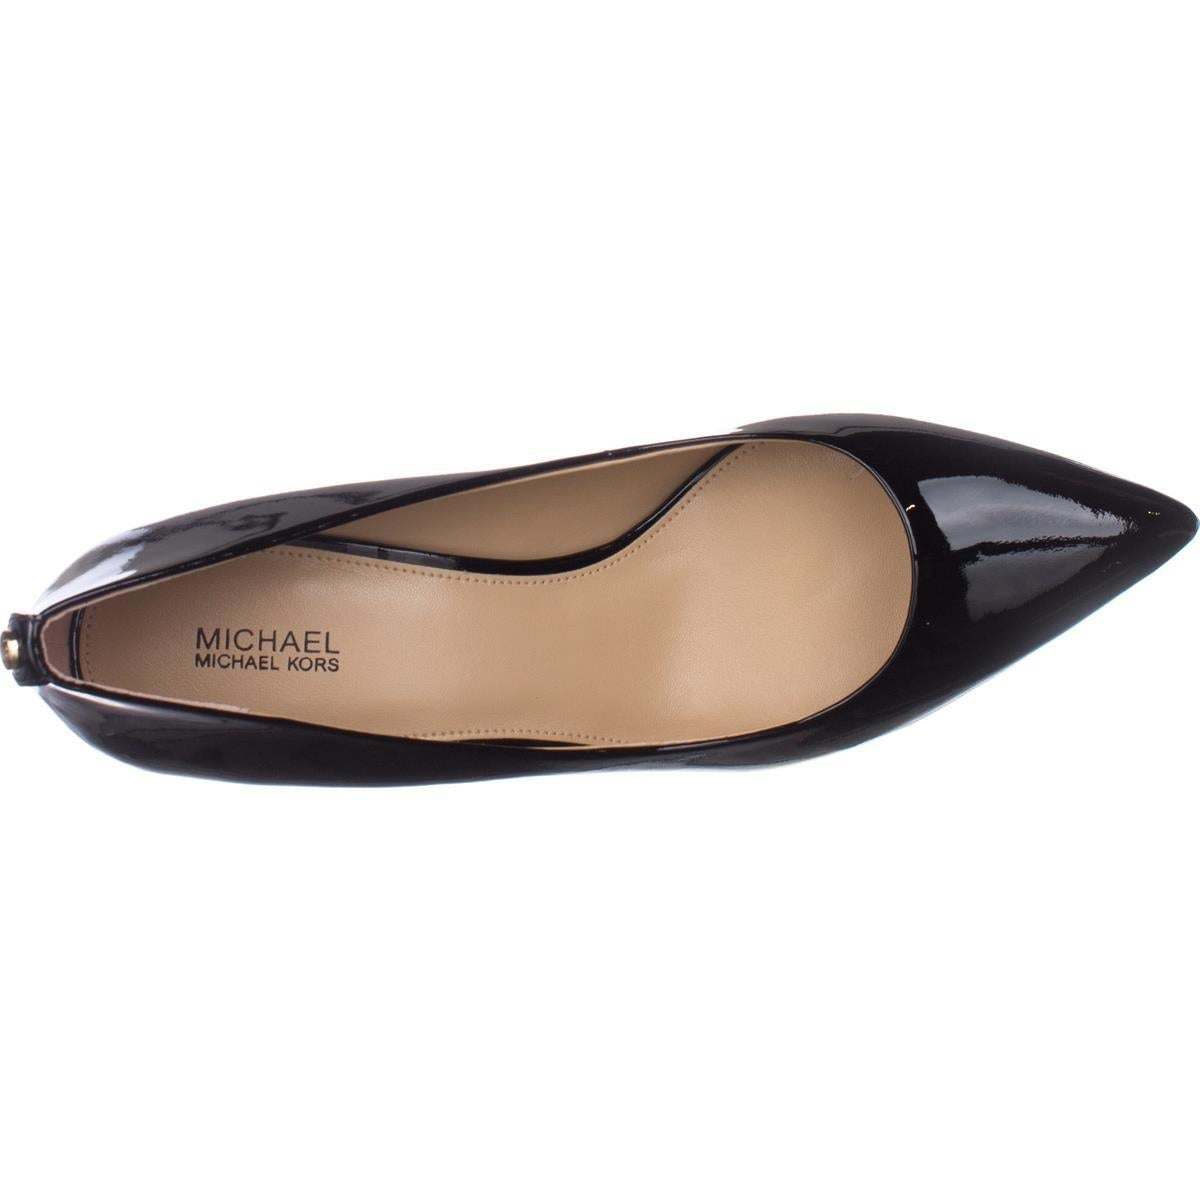 55b2e22215a Shop MICHAEL Michael Kors MK Flex Kitten Pointed-Toe Pumps